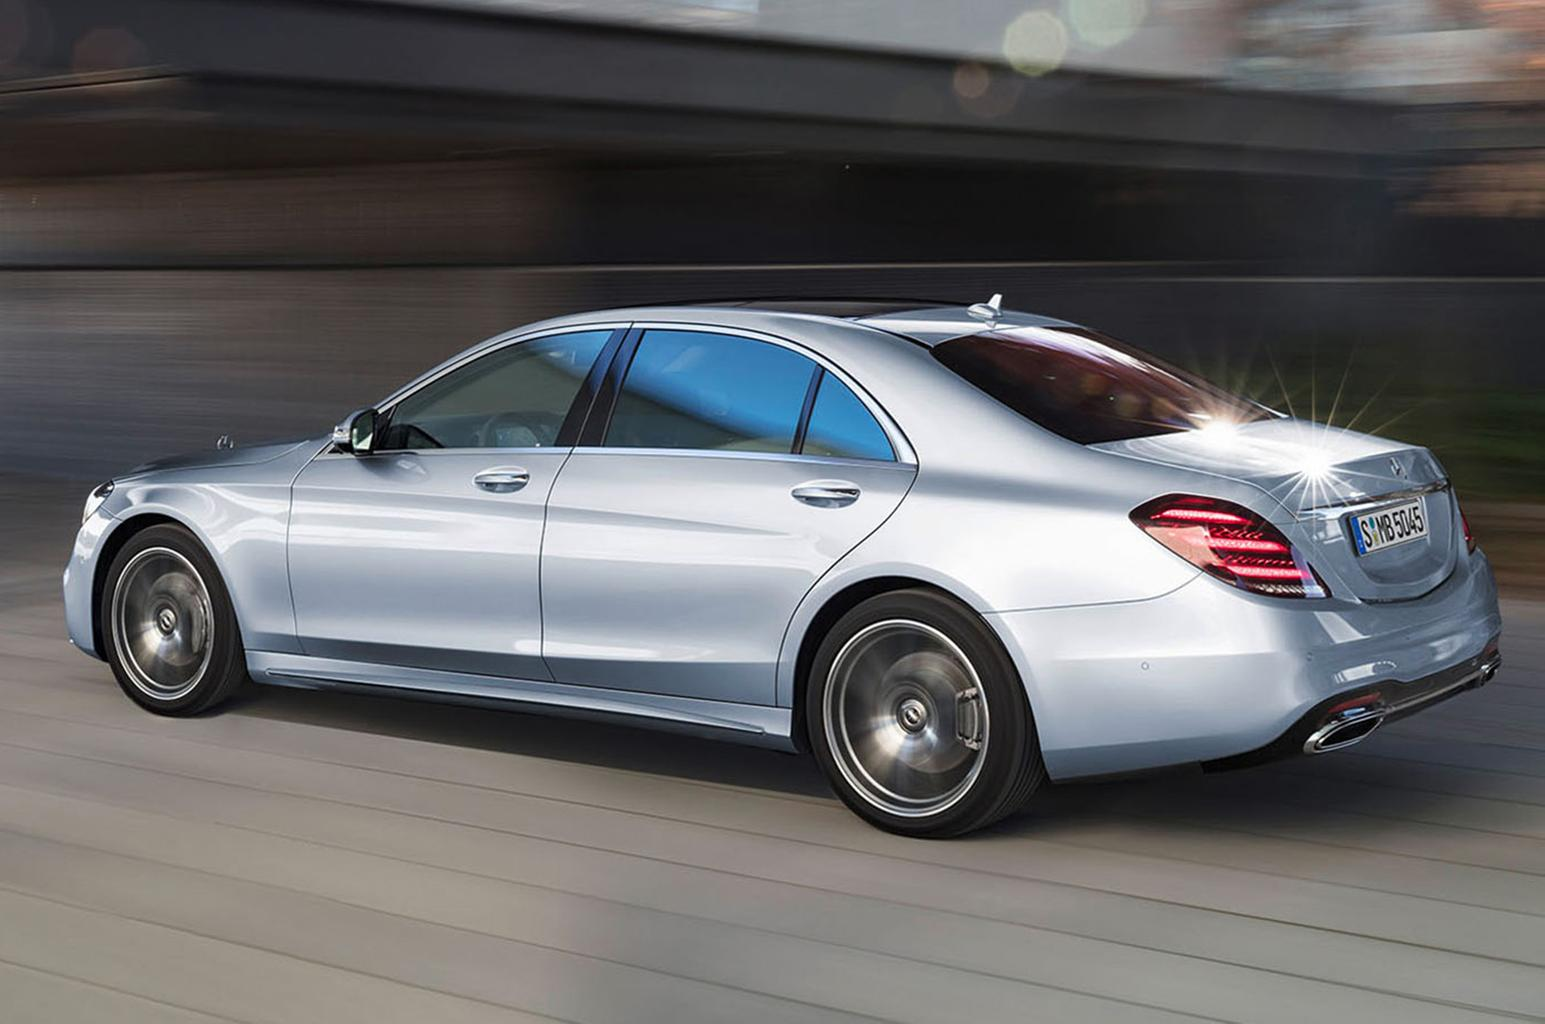 Facelifted Mercedes S-Class unveiled with new self-driving tech